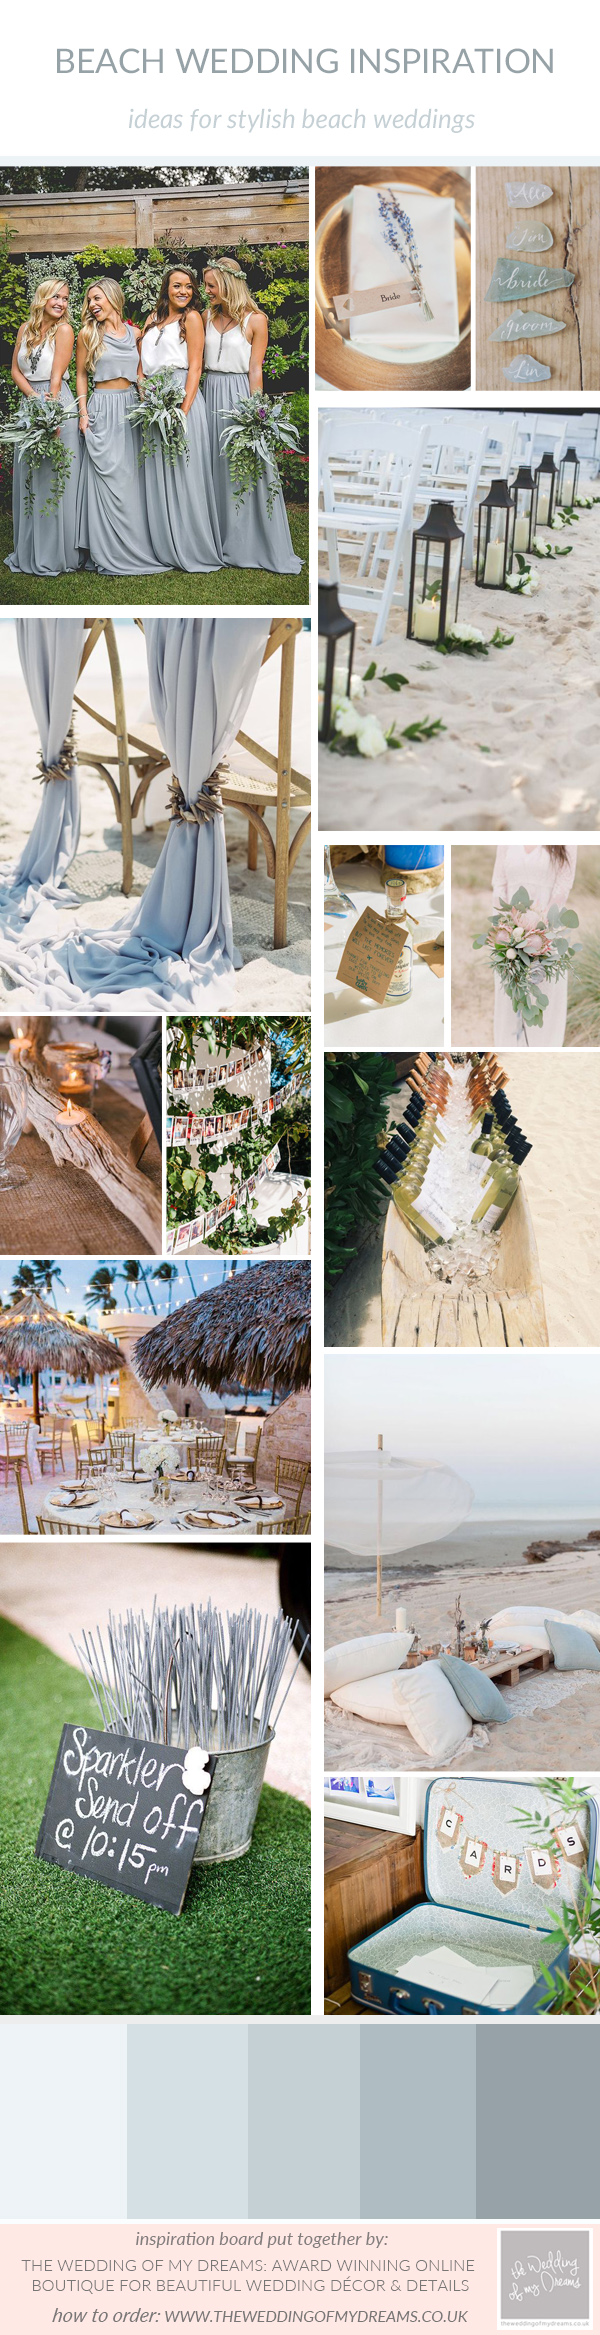 Stylish Beach wedding decorations and ideas